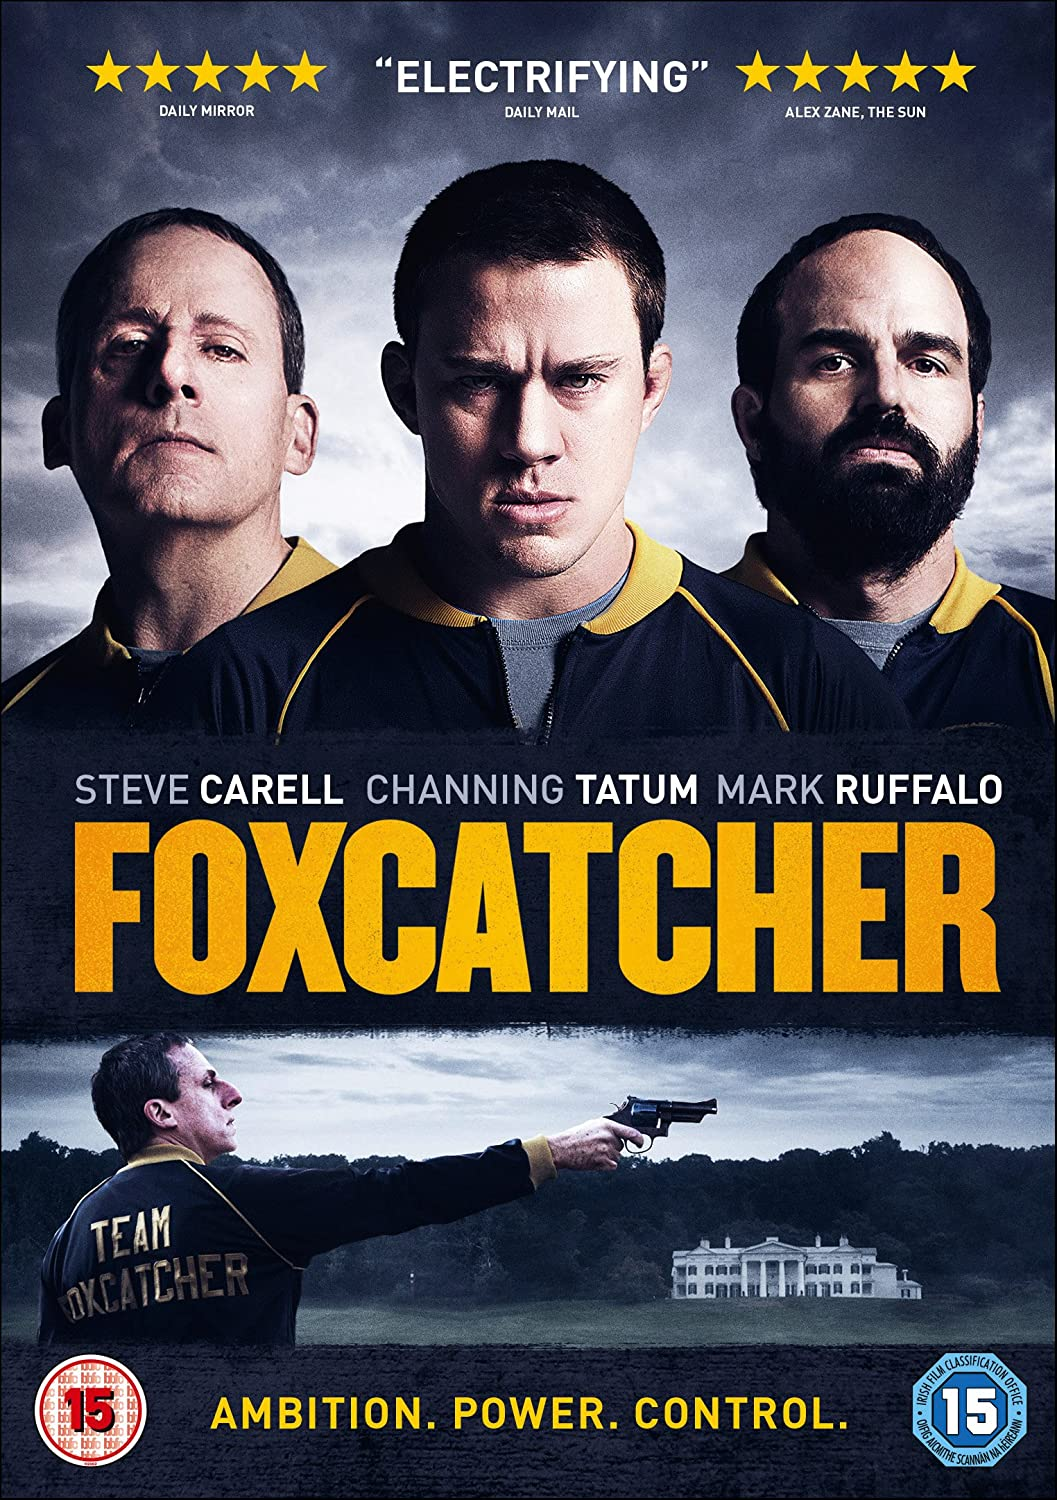 Foxcatcher [DVD] [] Amazon.co.uk Steve Carell Channing